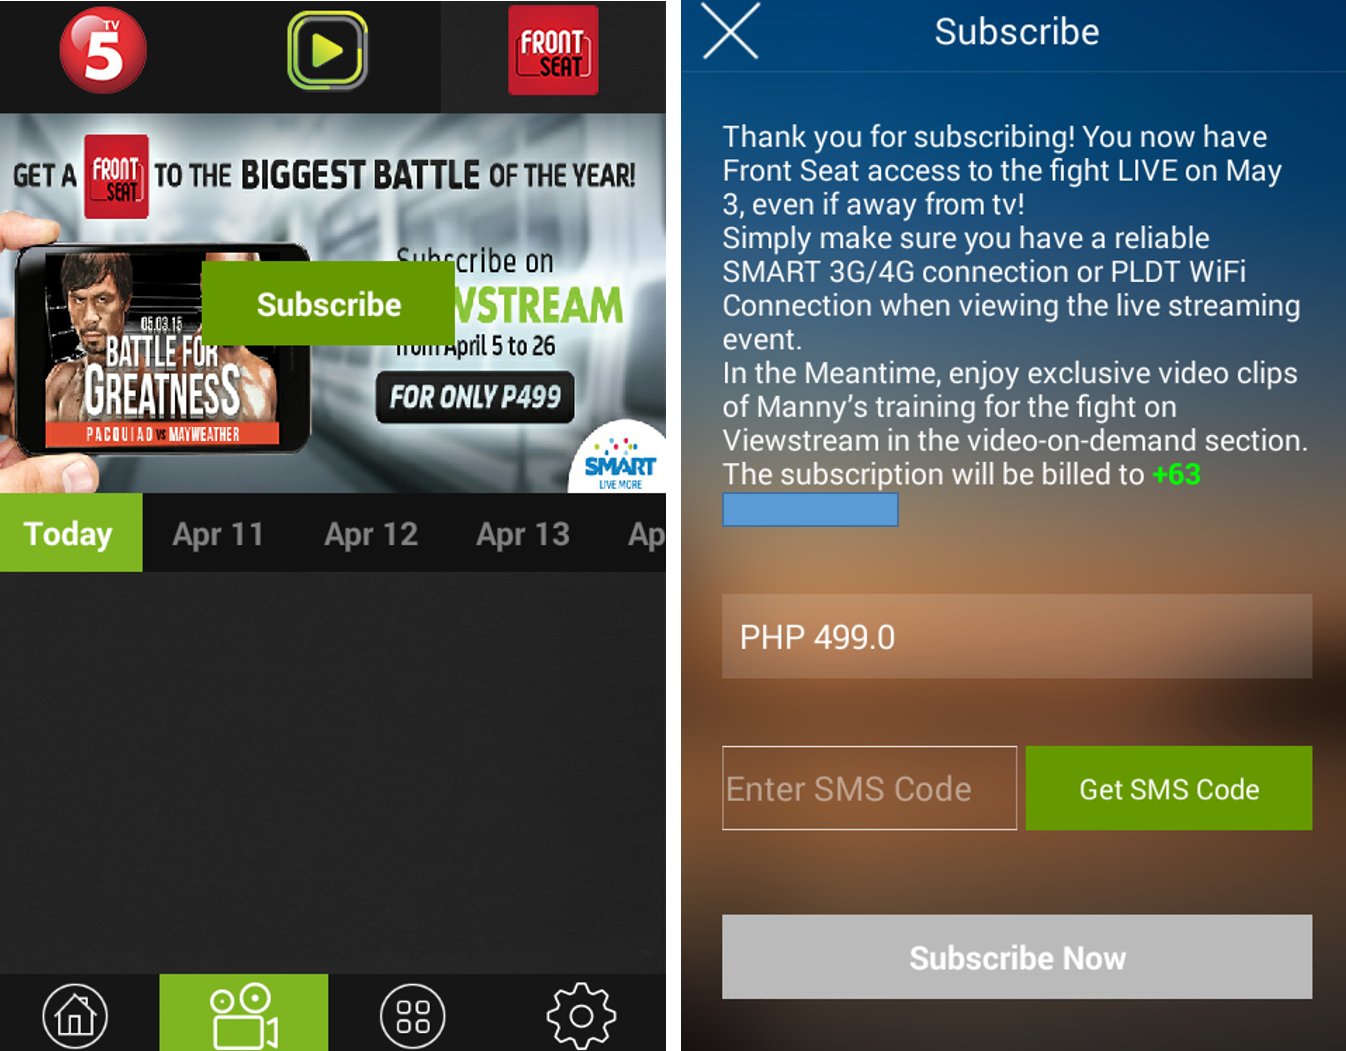 Pacquiao-Mayweather fight Live on your smartphone via Viewstream